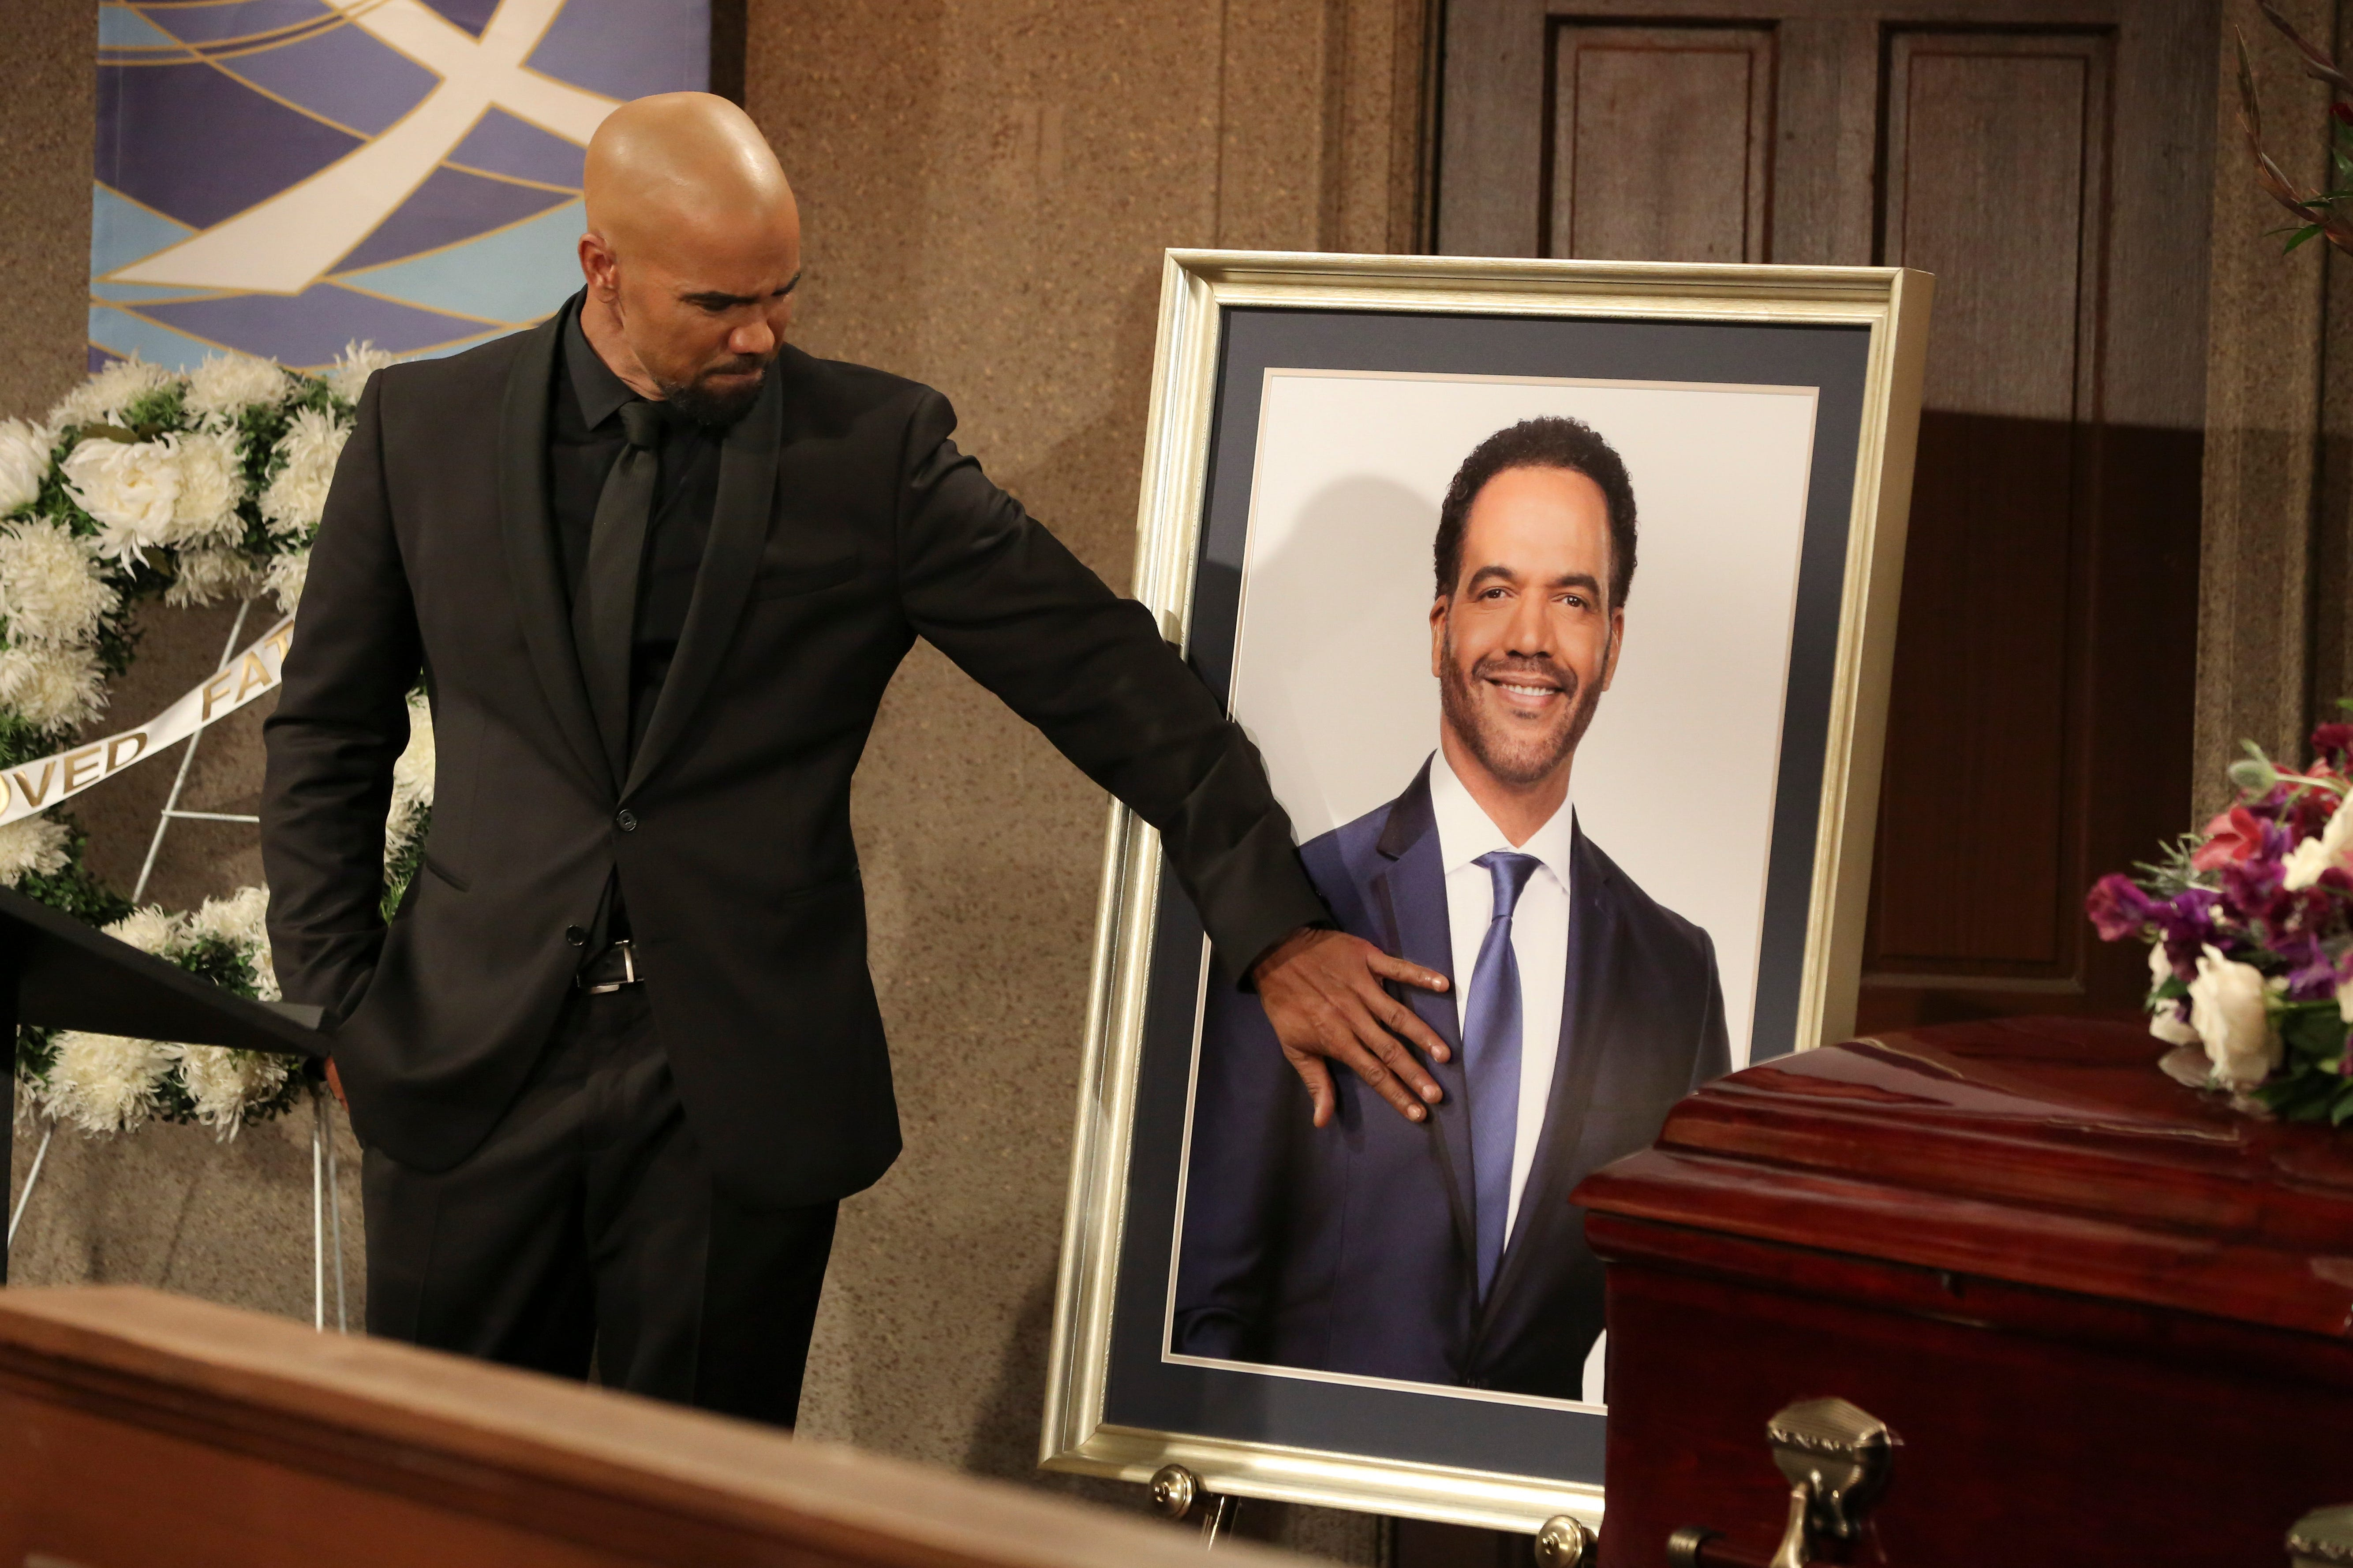 'Young and the Restless' honors Kristoff St. John with 4-episode story arc this week